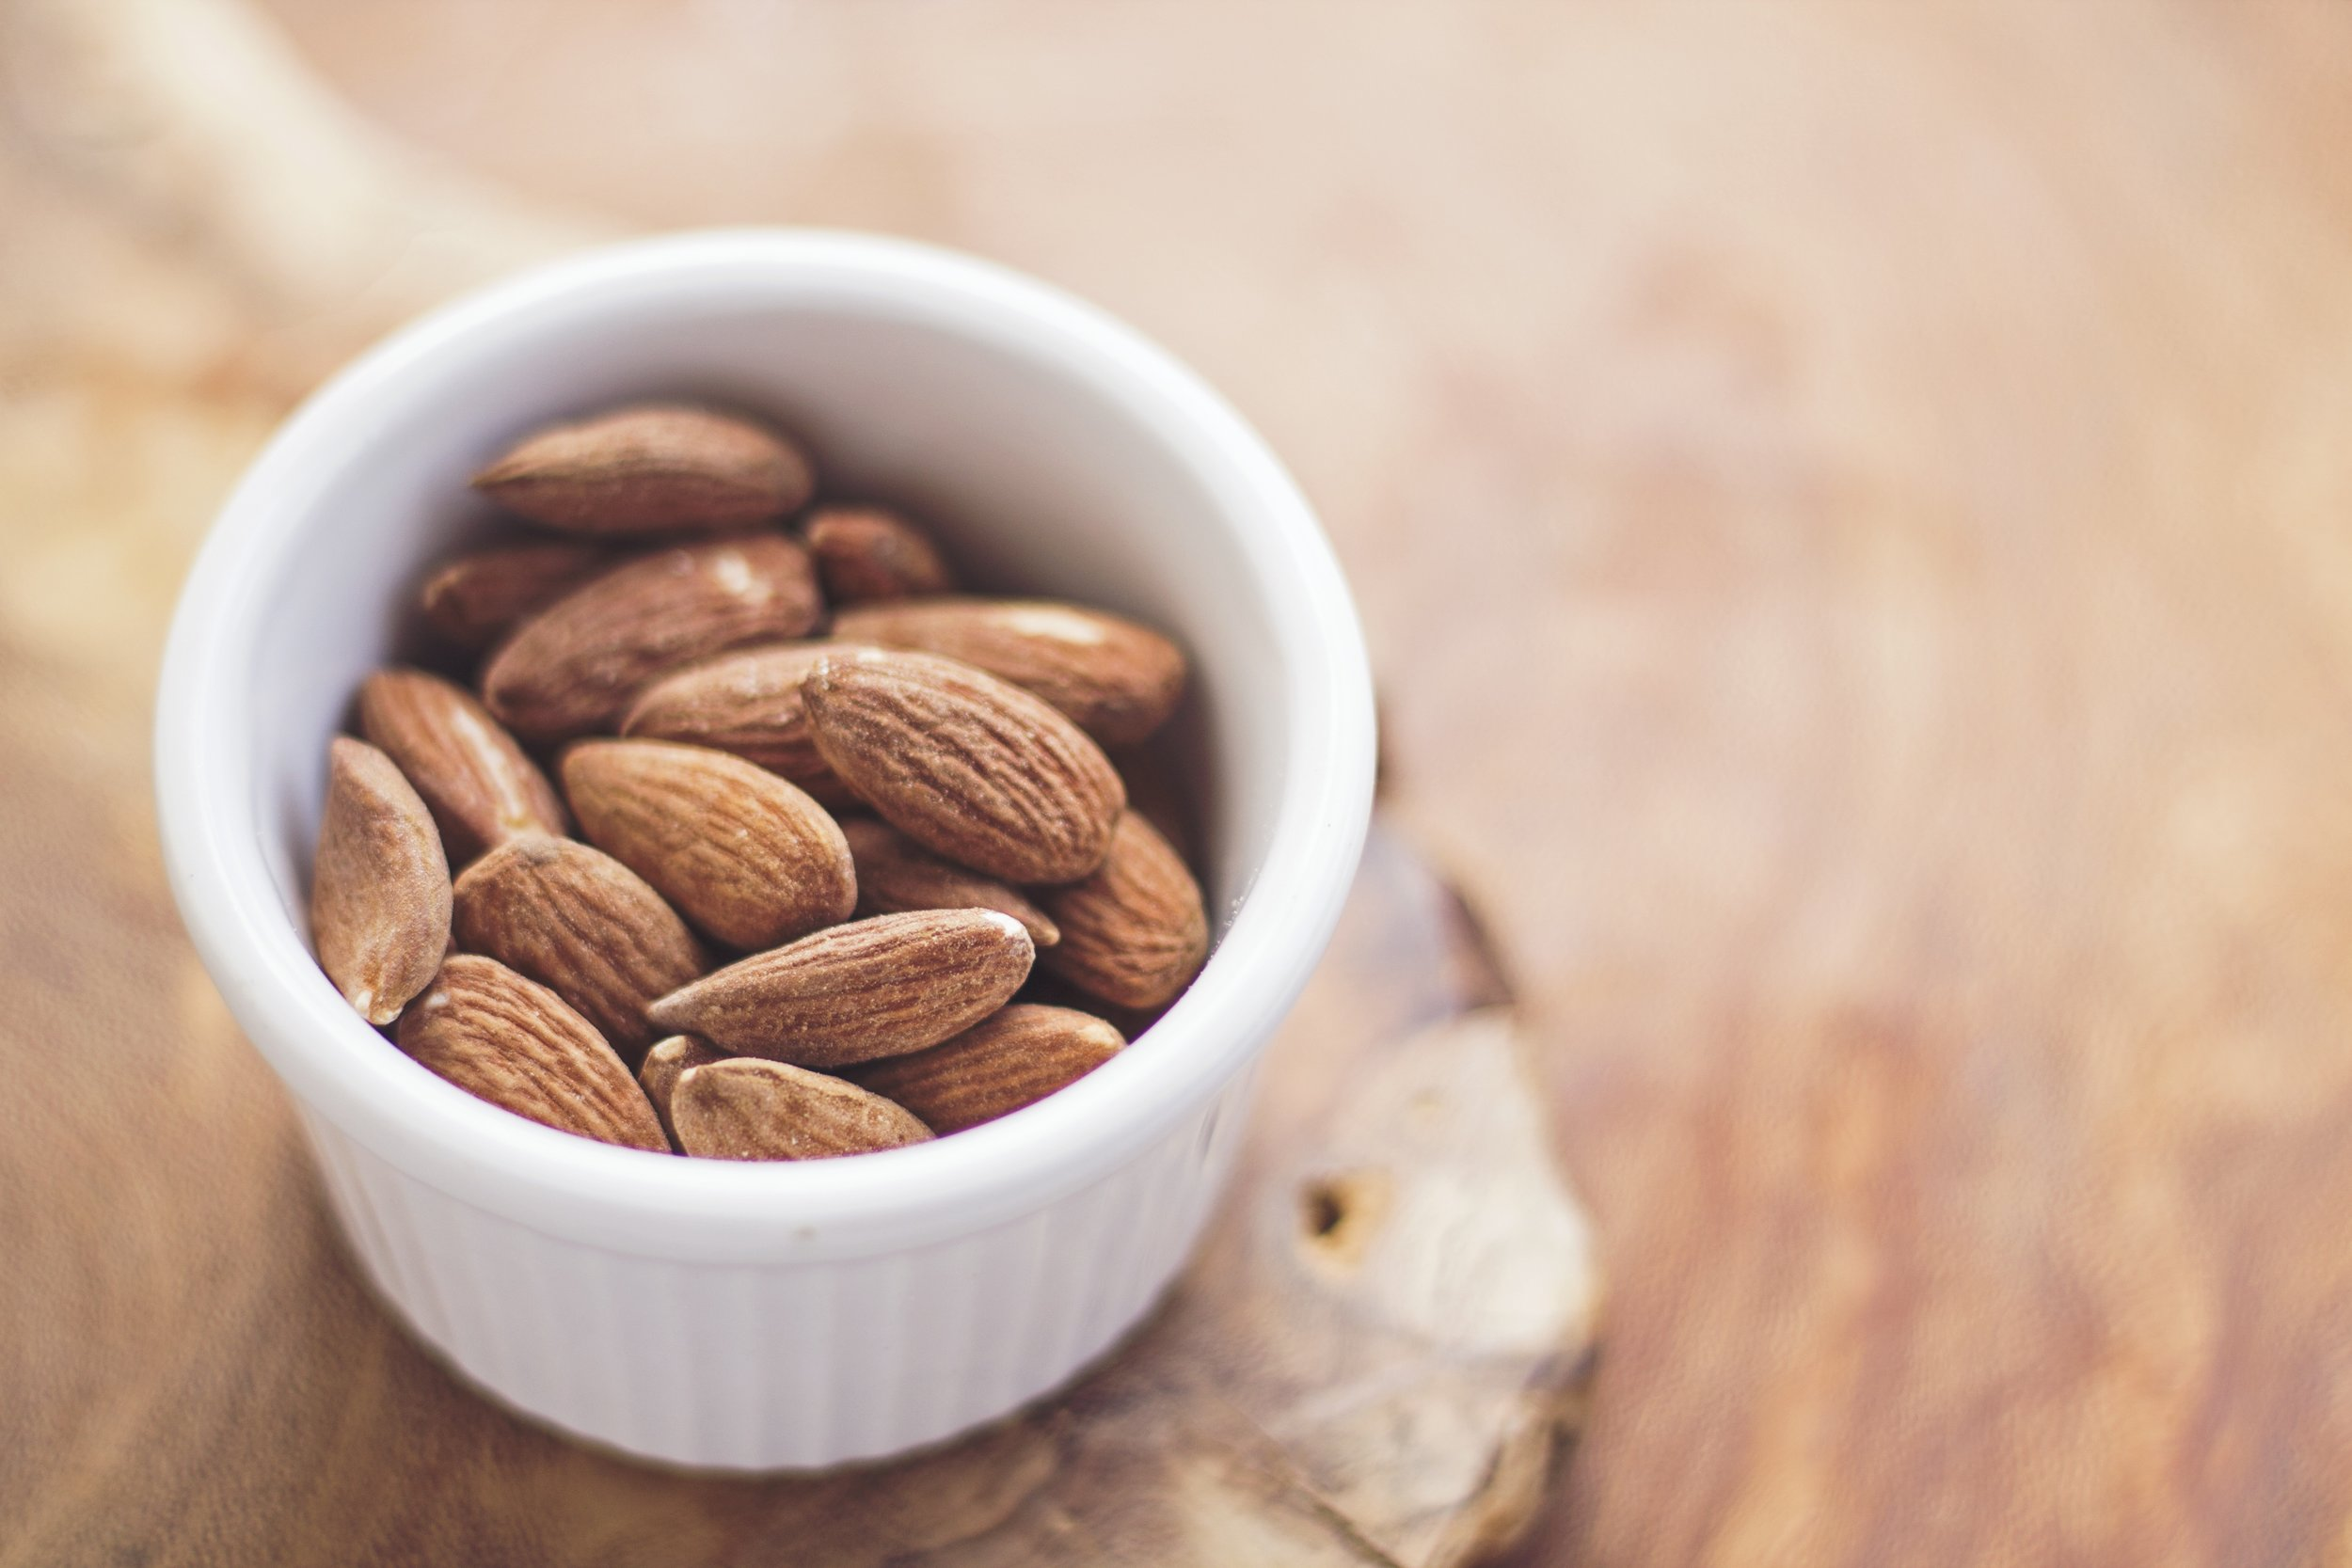 Almonds - are a great source of magnesium, potassium, vitamin E amongst other minerals.